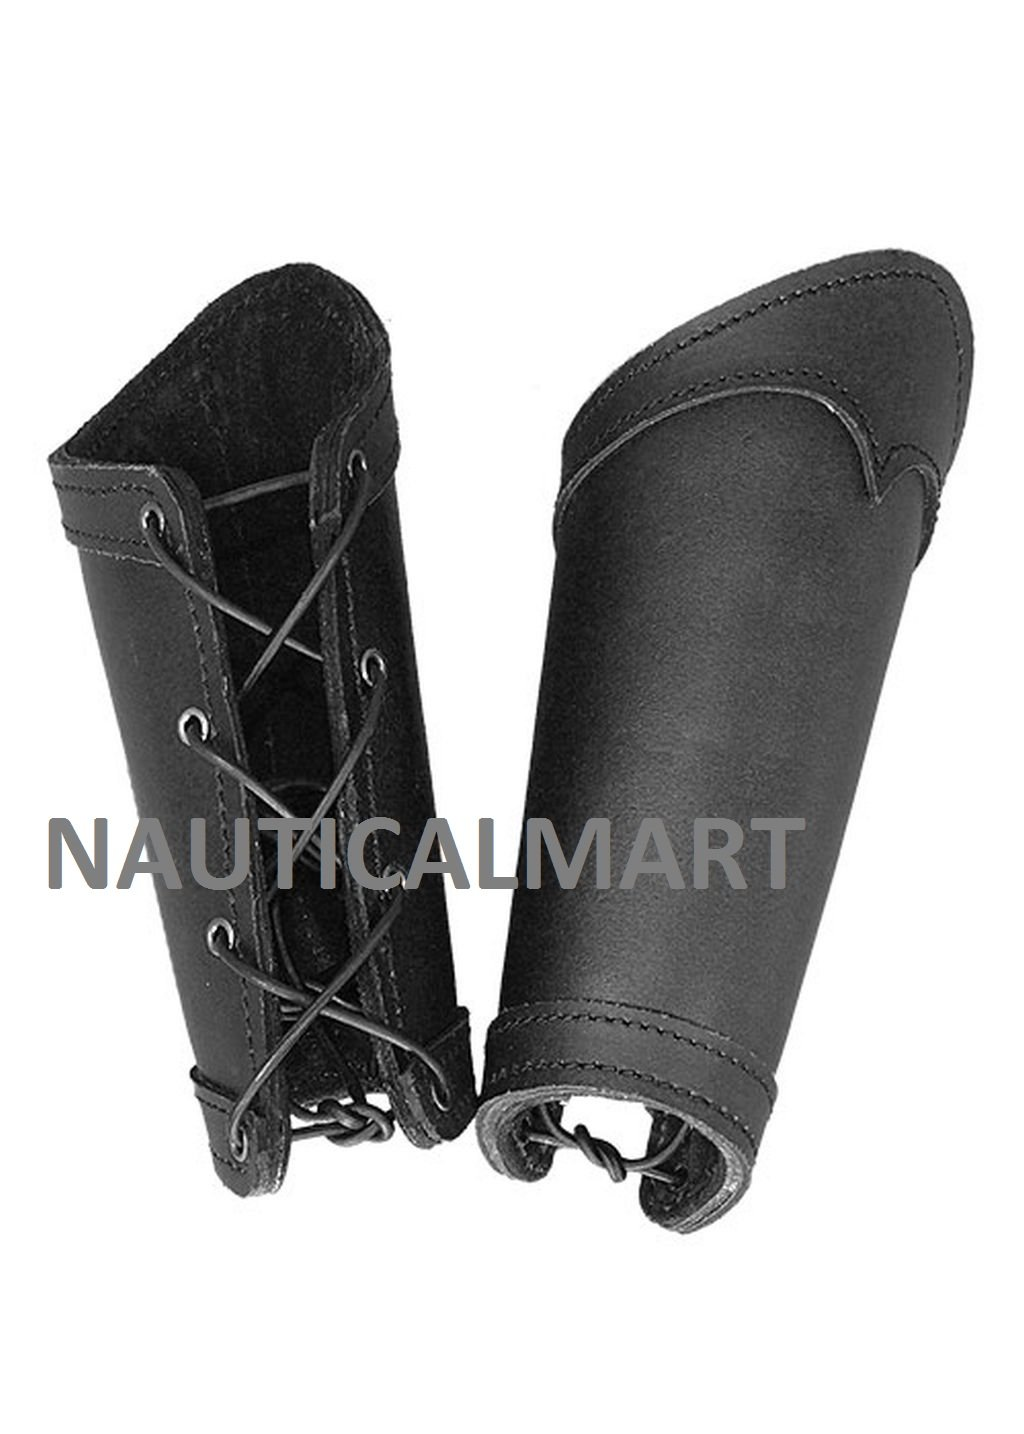 NAUTICALMART Pair of Leather Arm Rail Warrior Black Arm Guards LARP Medieval Battle Viking by NAUTICALMART